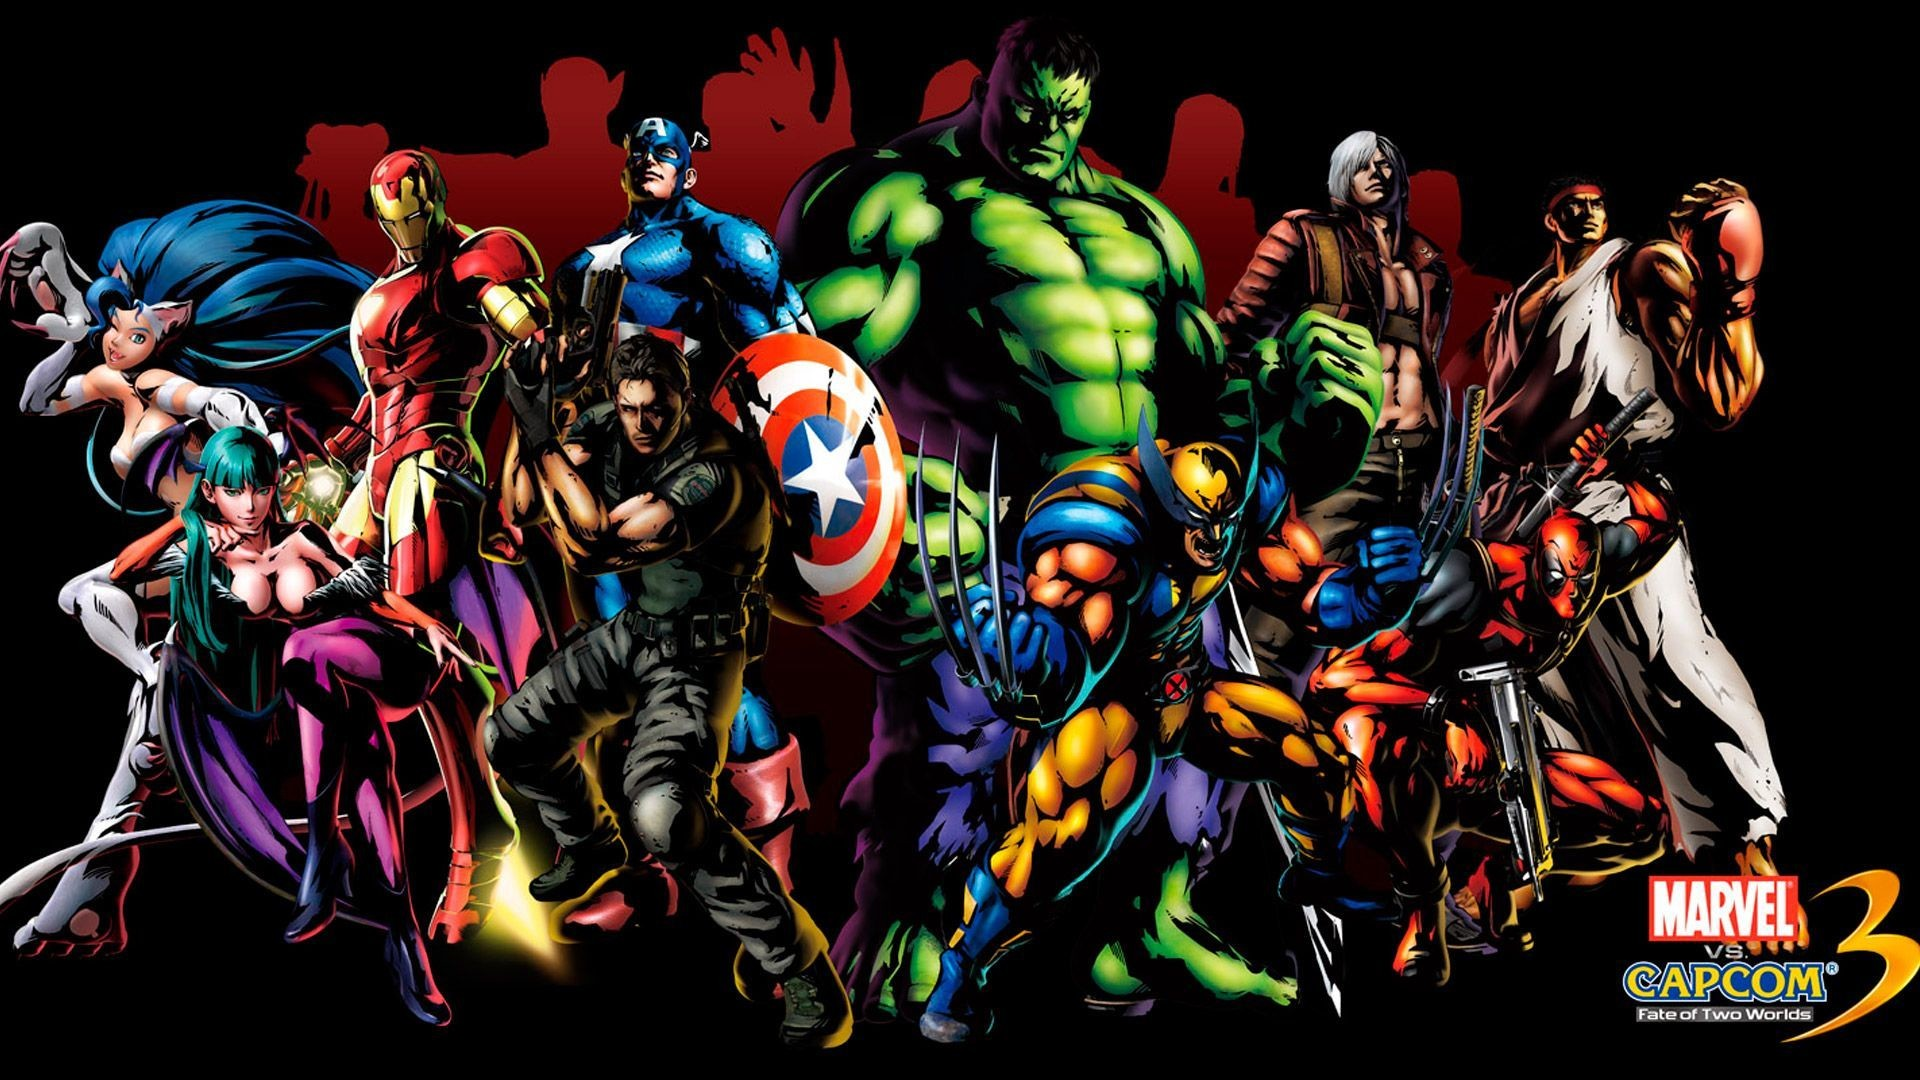 1920x1080 phone wallpapers for dcmarvel characters browse free android wallpapers android central 1920x1080